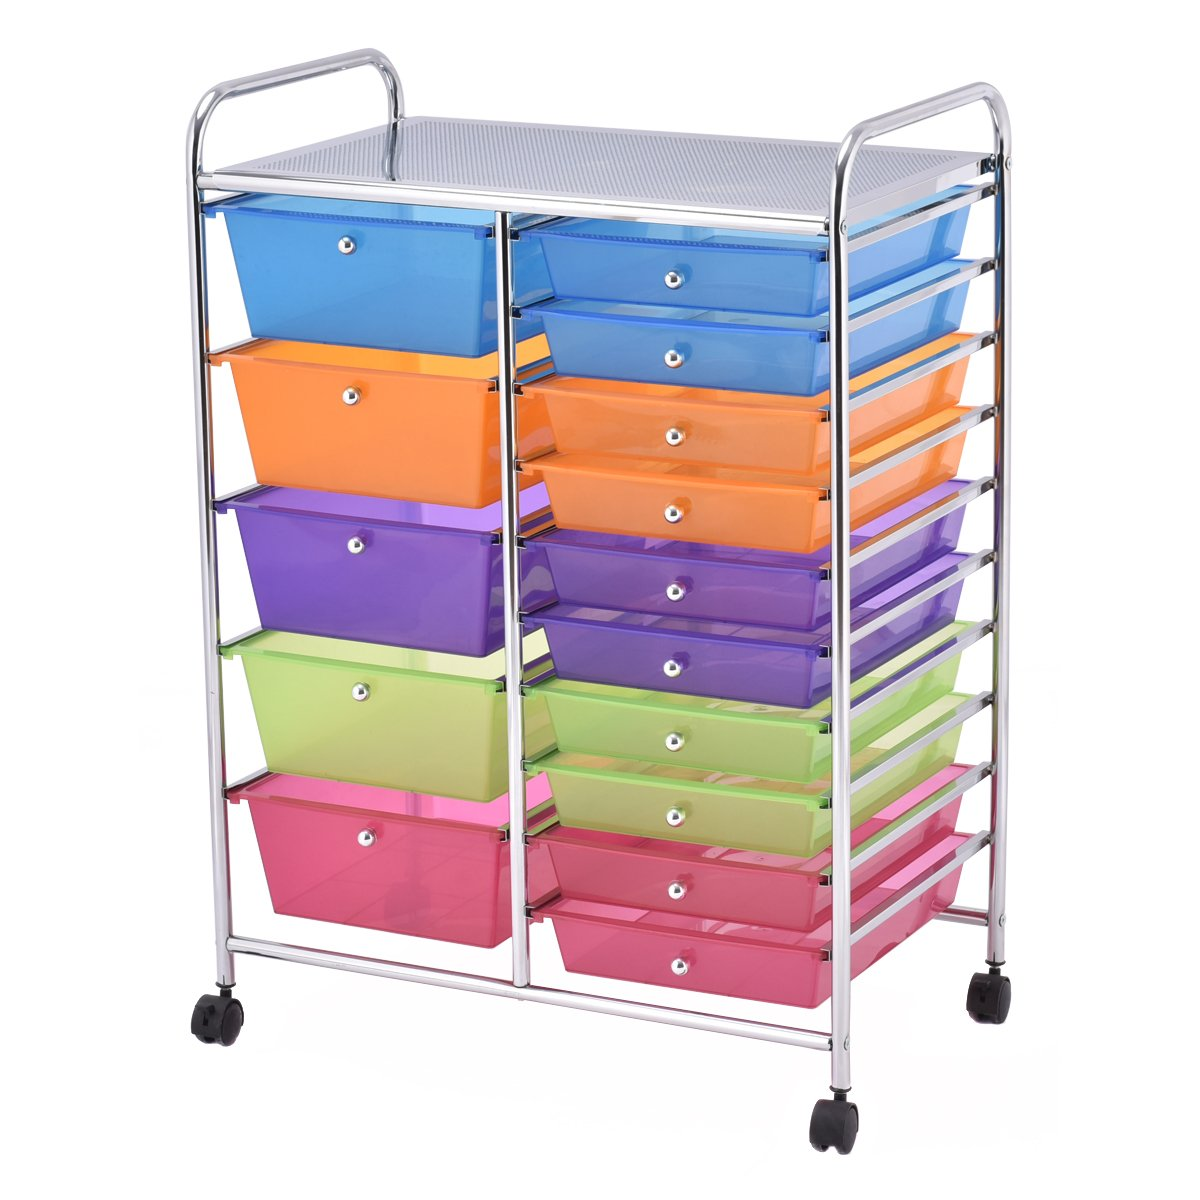 office rolling cart. Amazon.com : Giantex 15 Drawer Rolling Storage Cart Tools Scrapbook Paper Office School Organizer Products